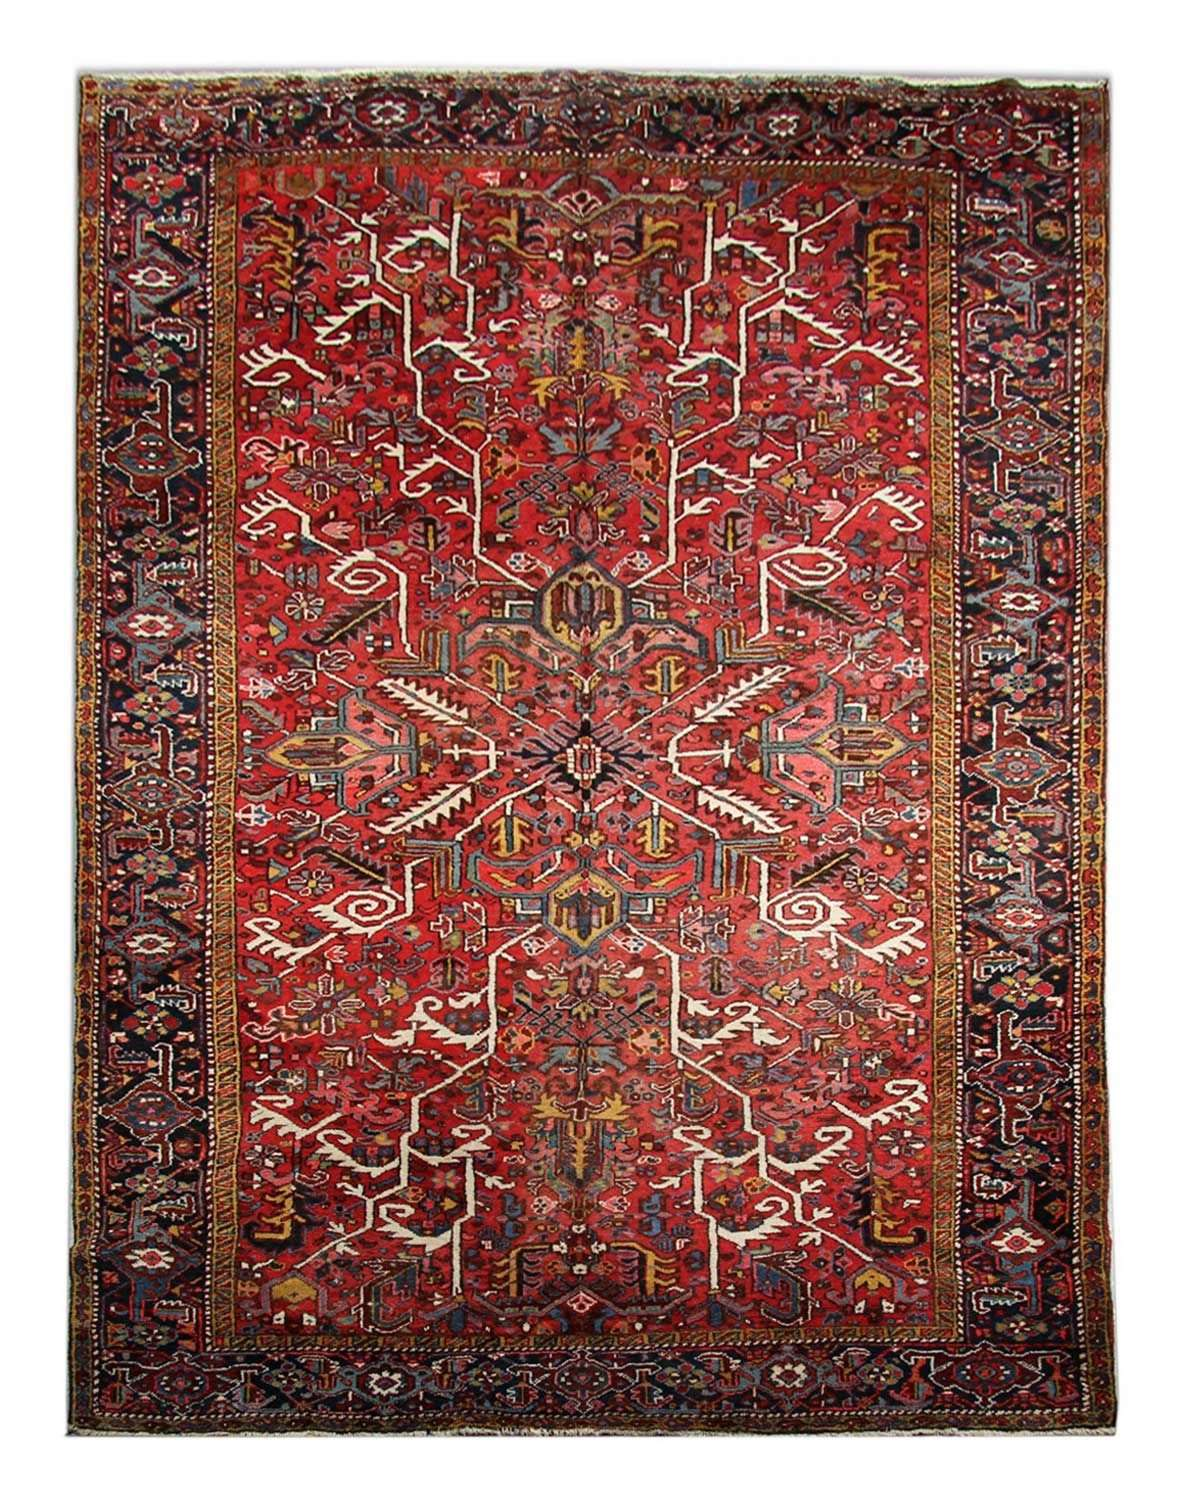 Antique Persian Carpet, Heriz Carpet